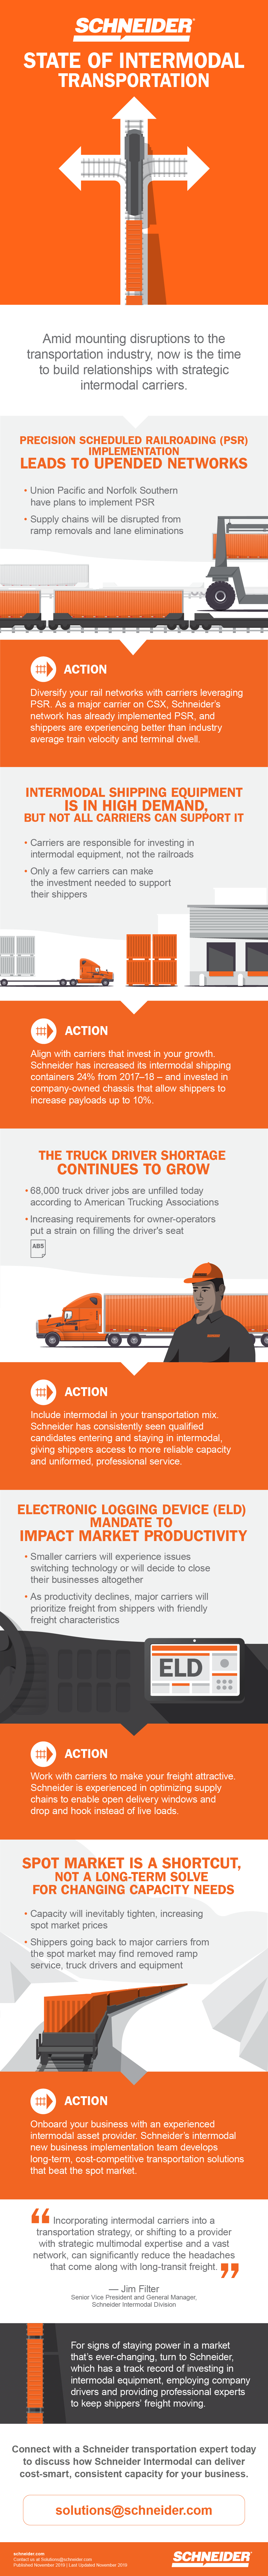 State of Intermodal infographic